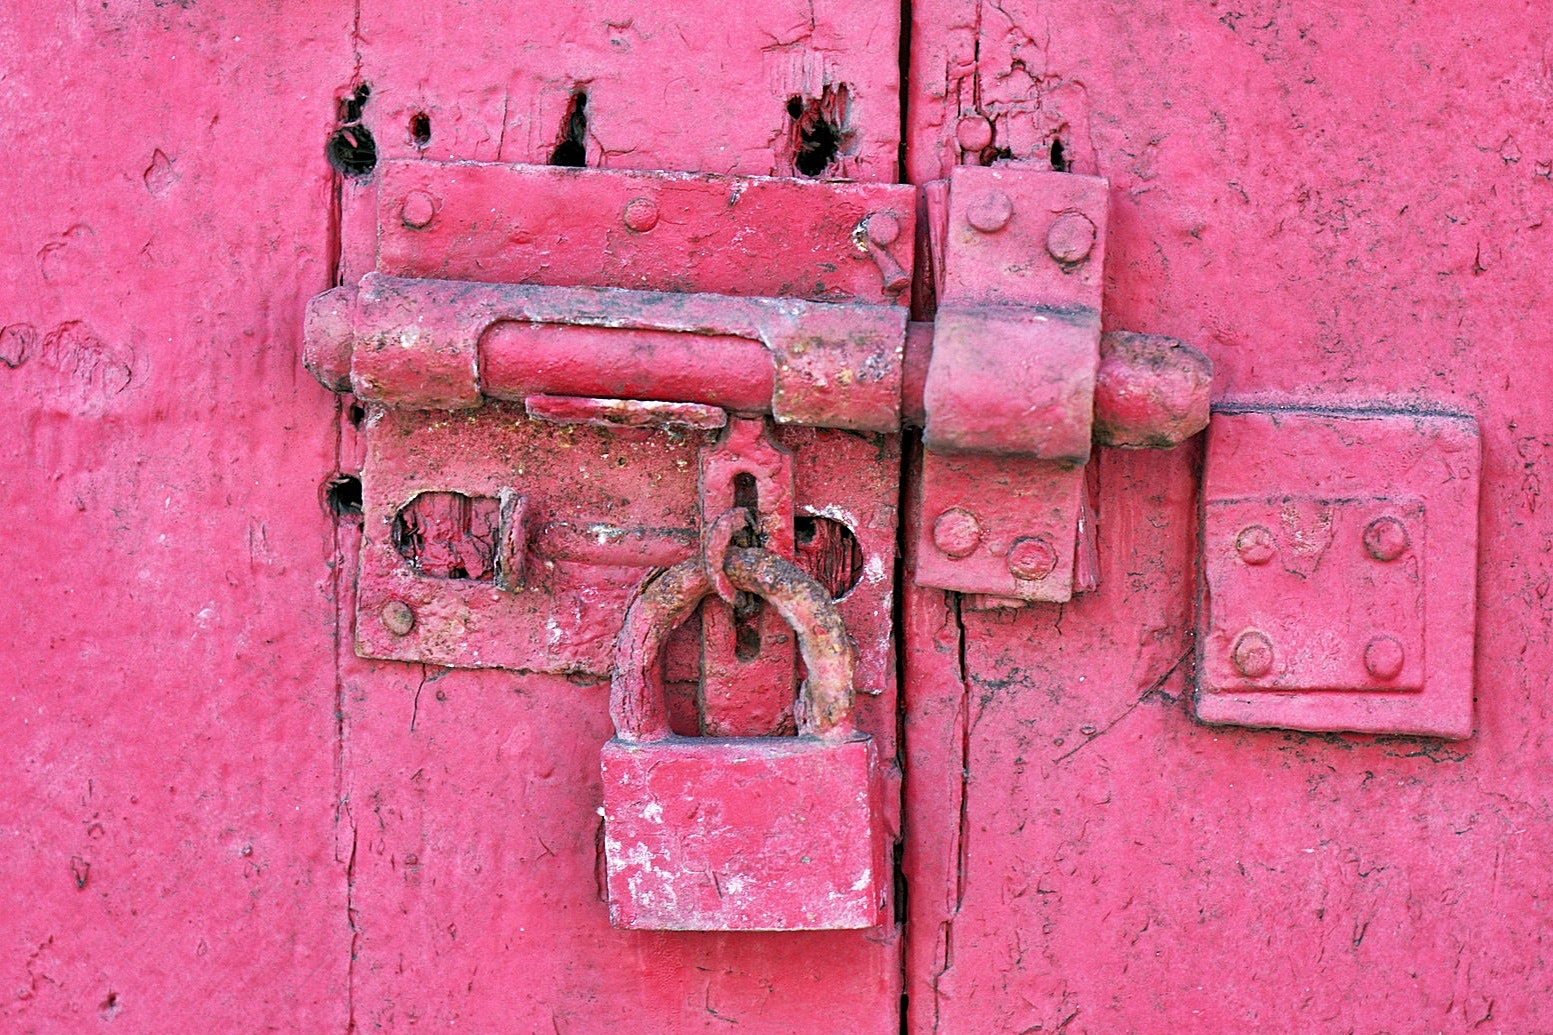 Red Metal Padlock, Antique, Dirty, Door, Entrance, HQ Photo